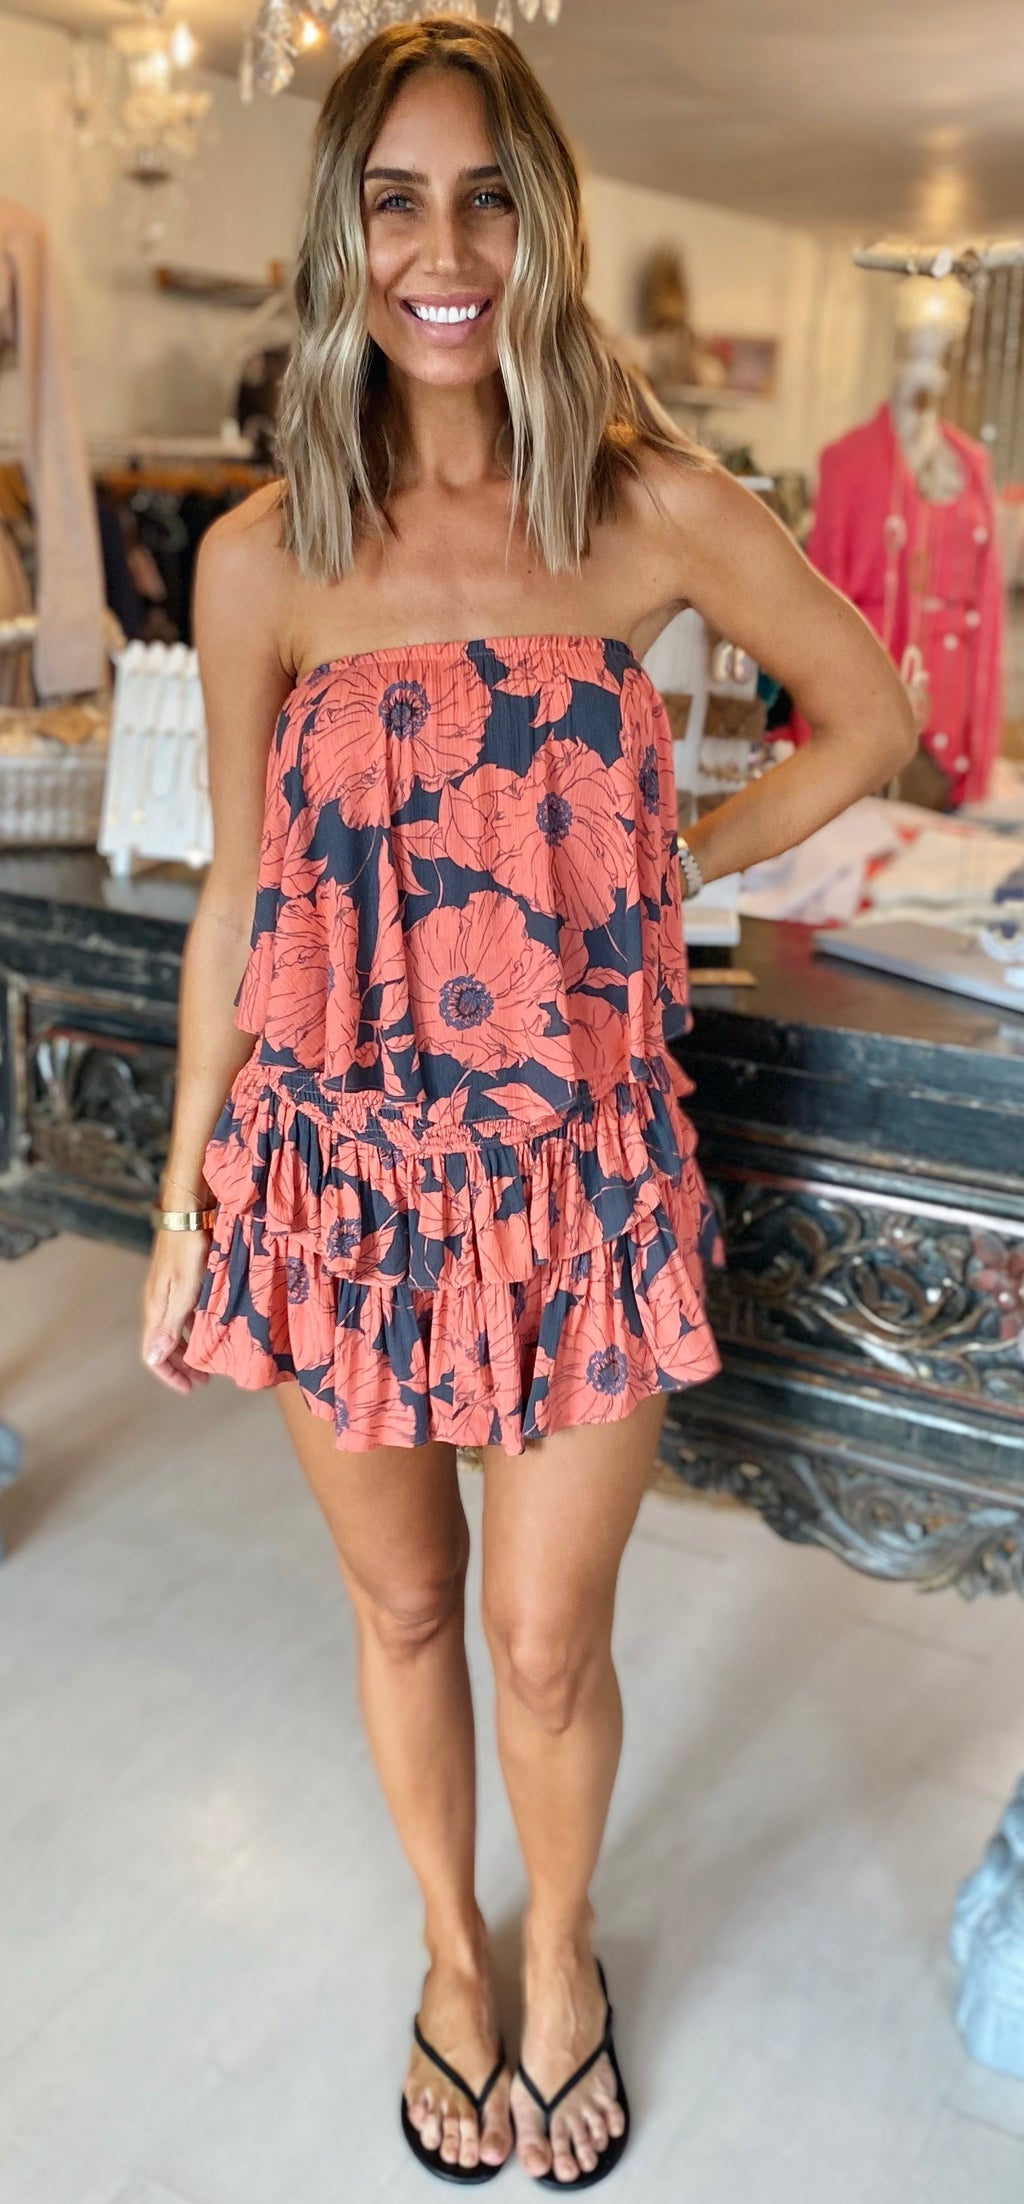 The Tampa Floral Romper